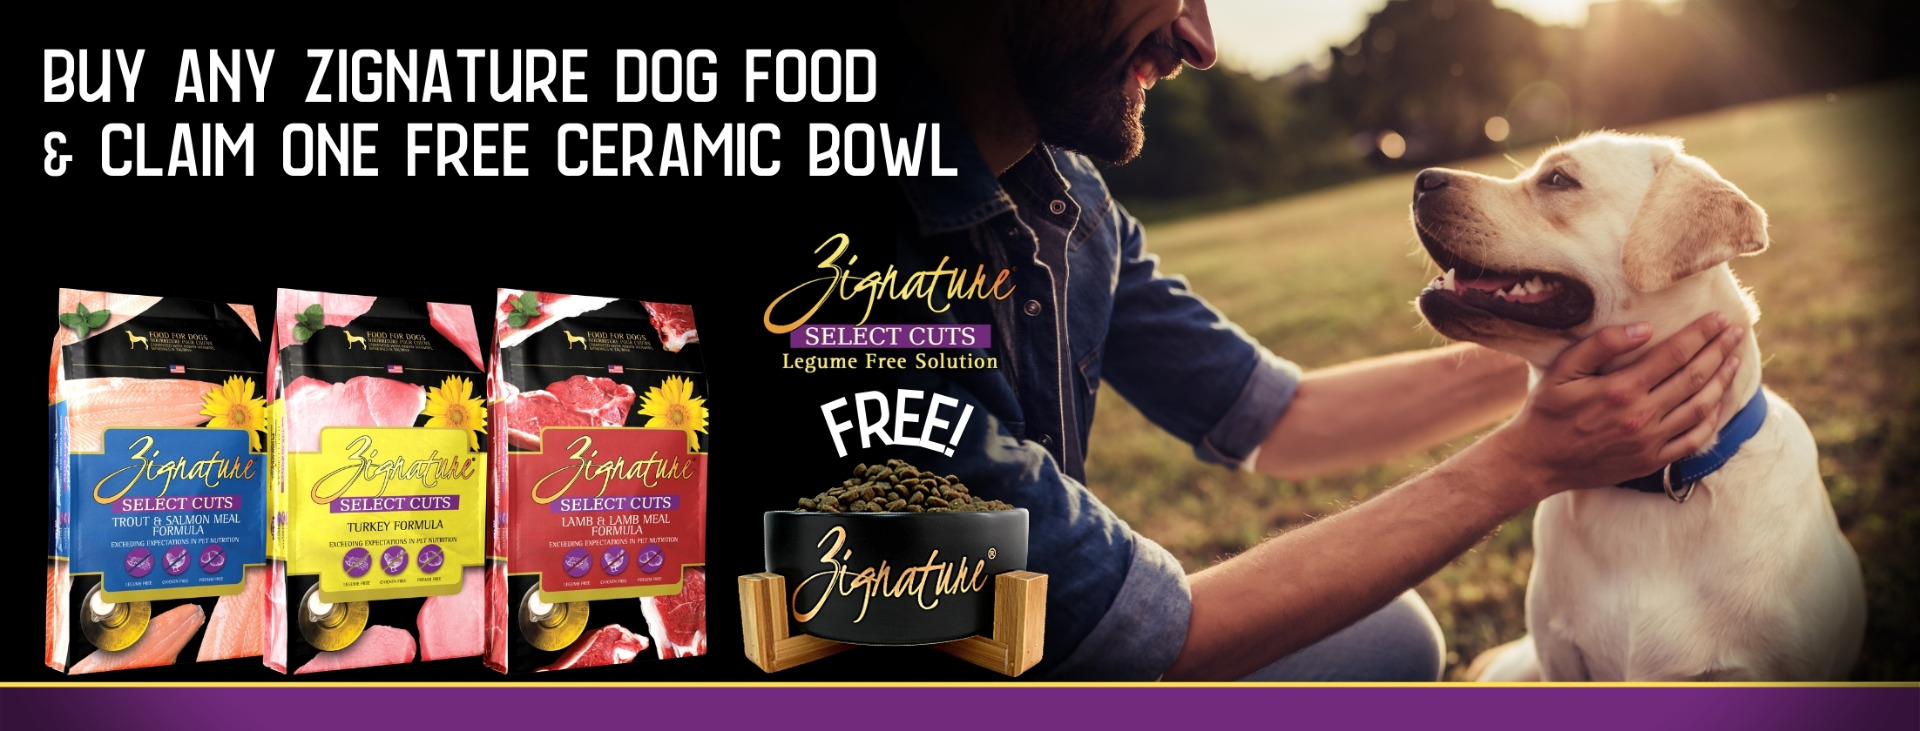 Buy any Zignature Dog Food & Claim a Free Ceramic Bowl